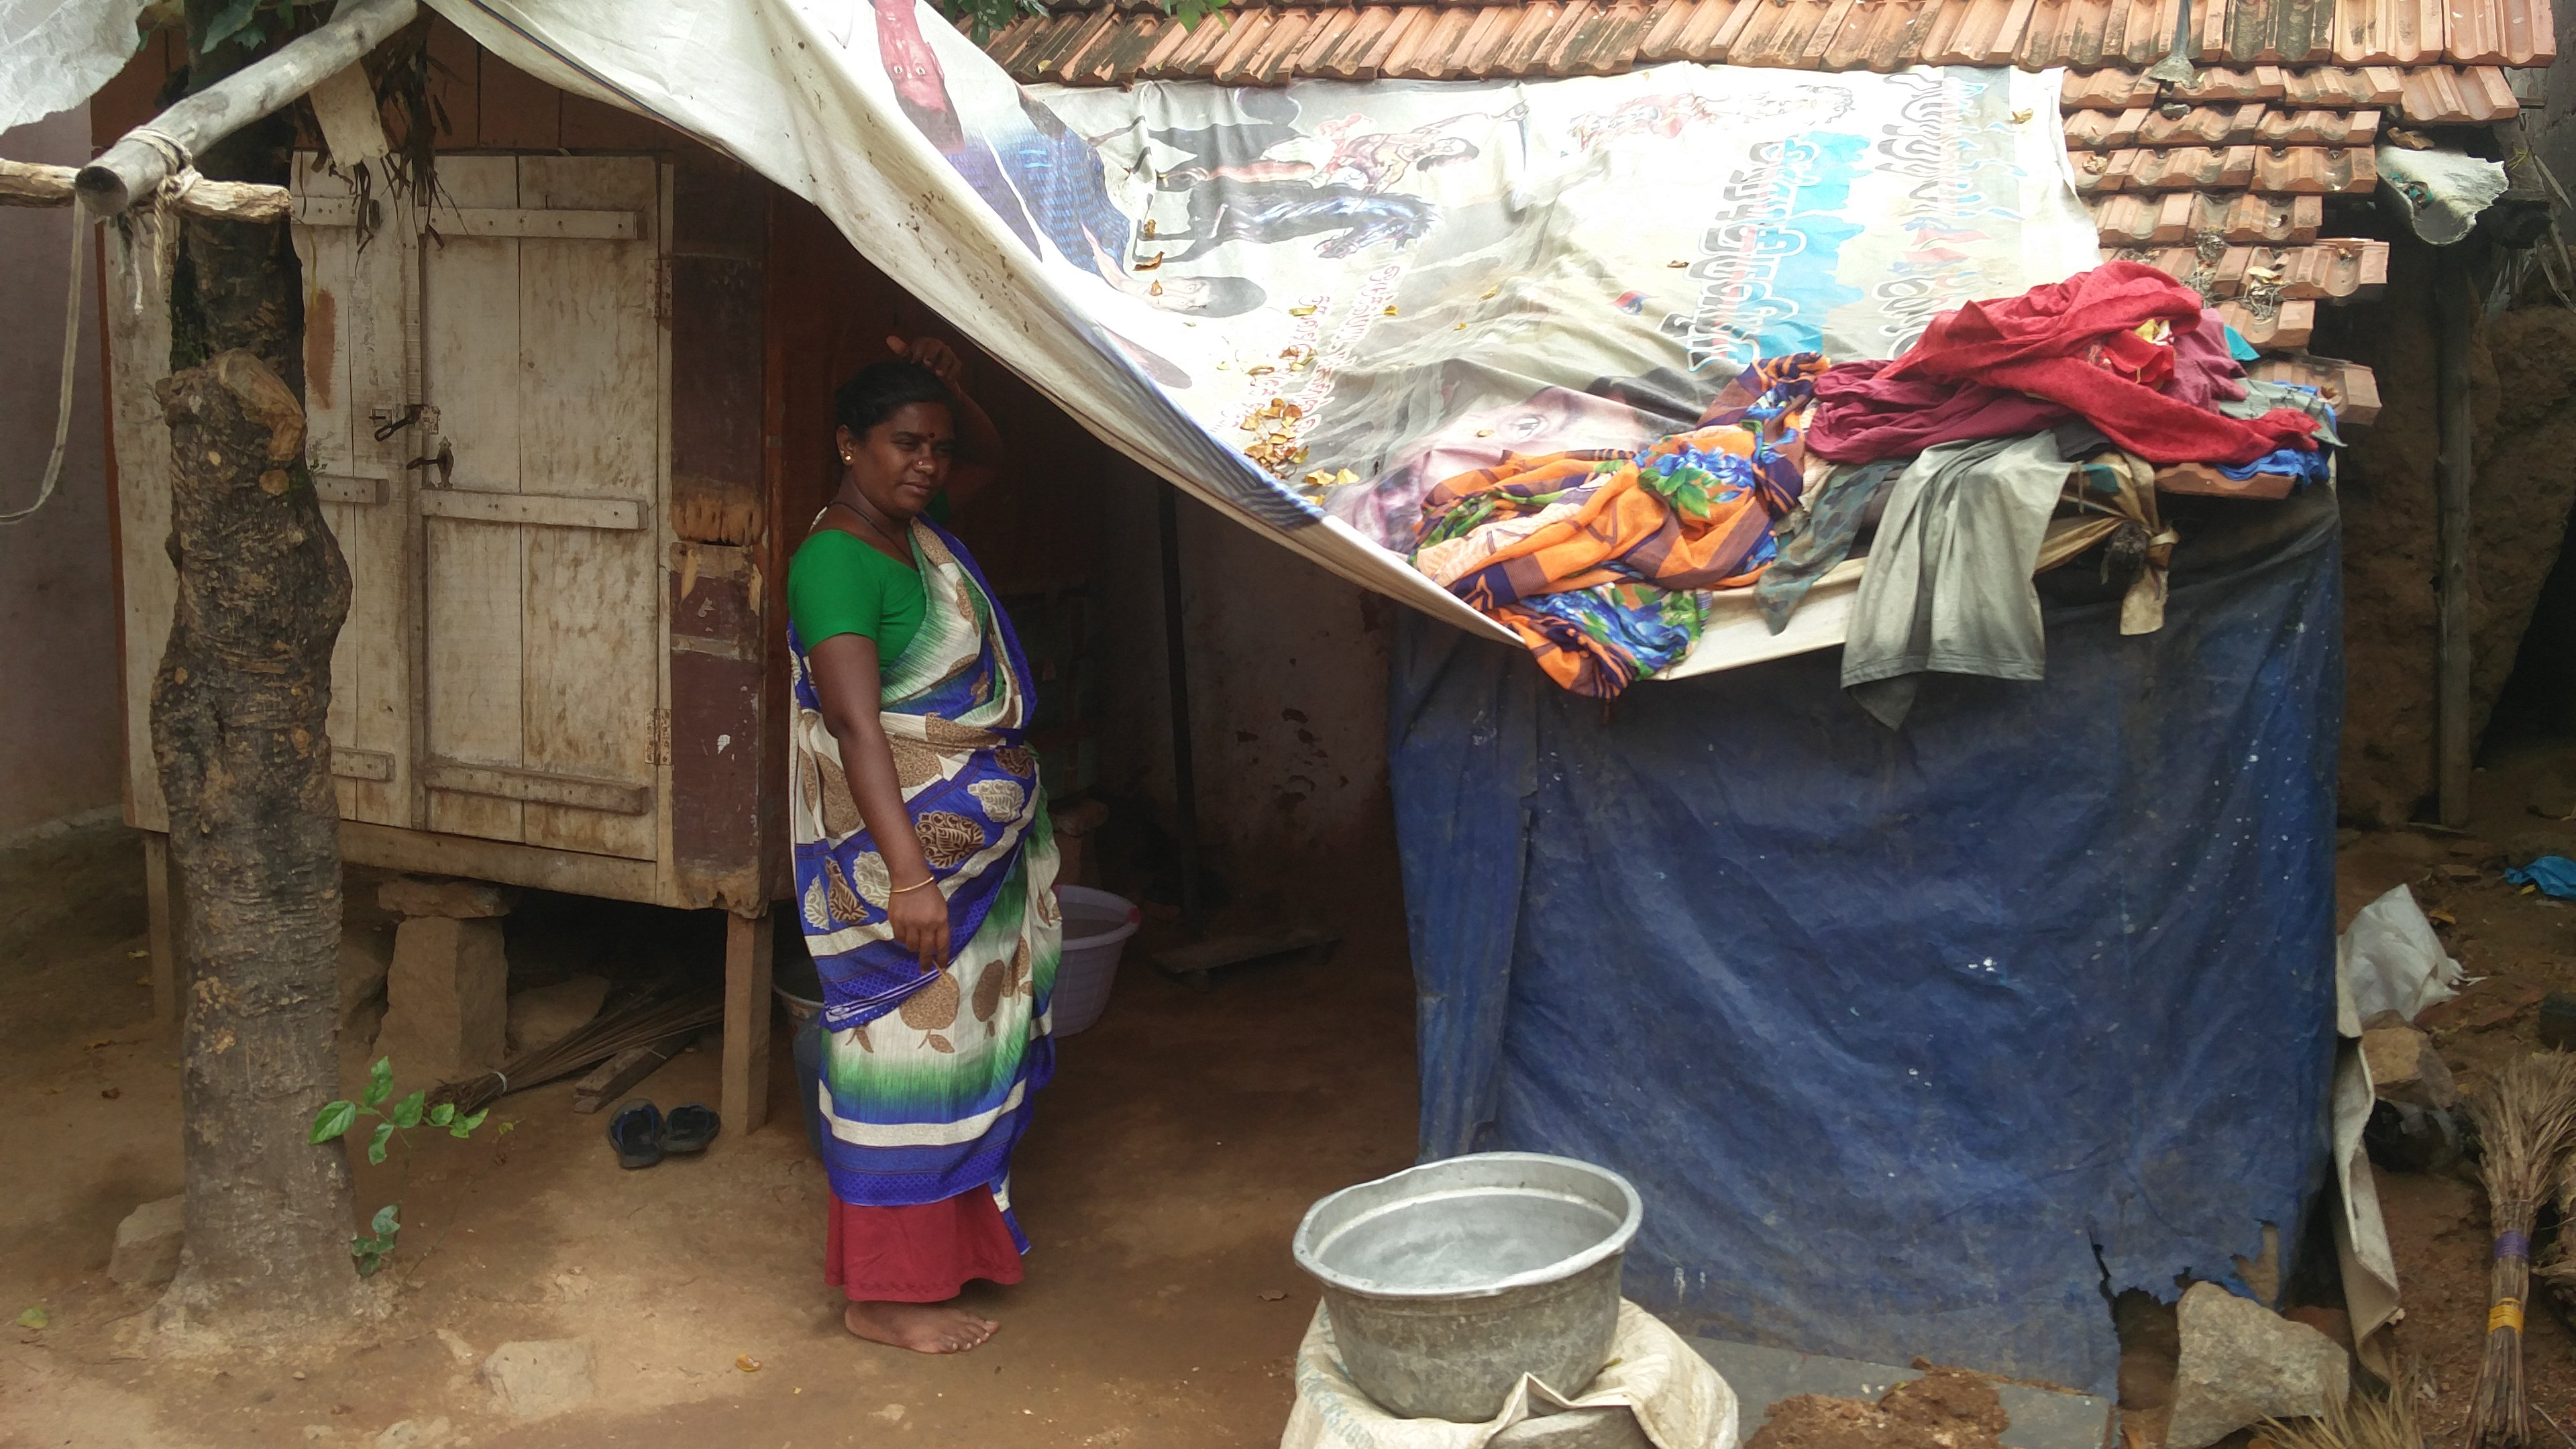 The Arunthathiyar settlement in Thottiyapati village is home to 43 Dalit families.